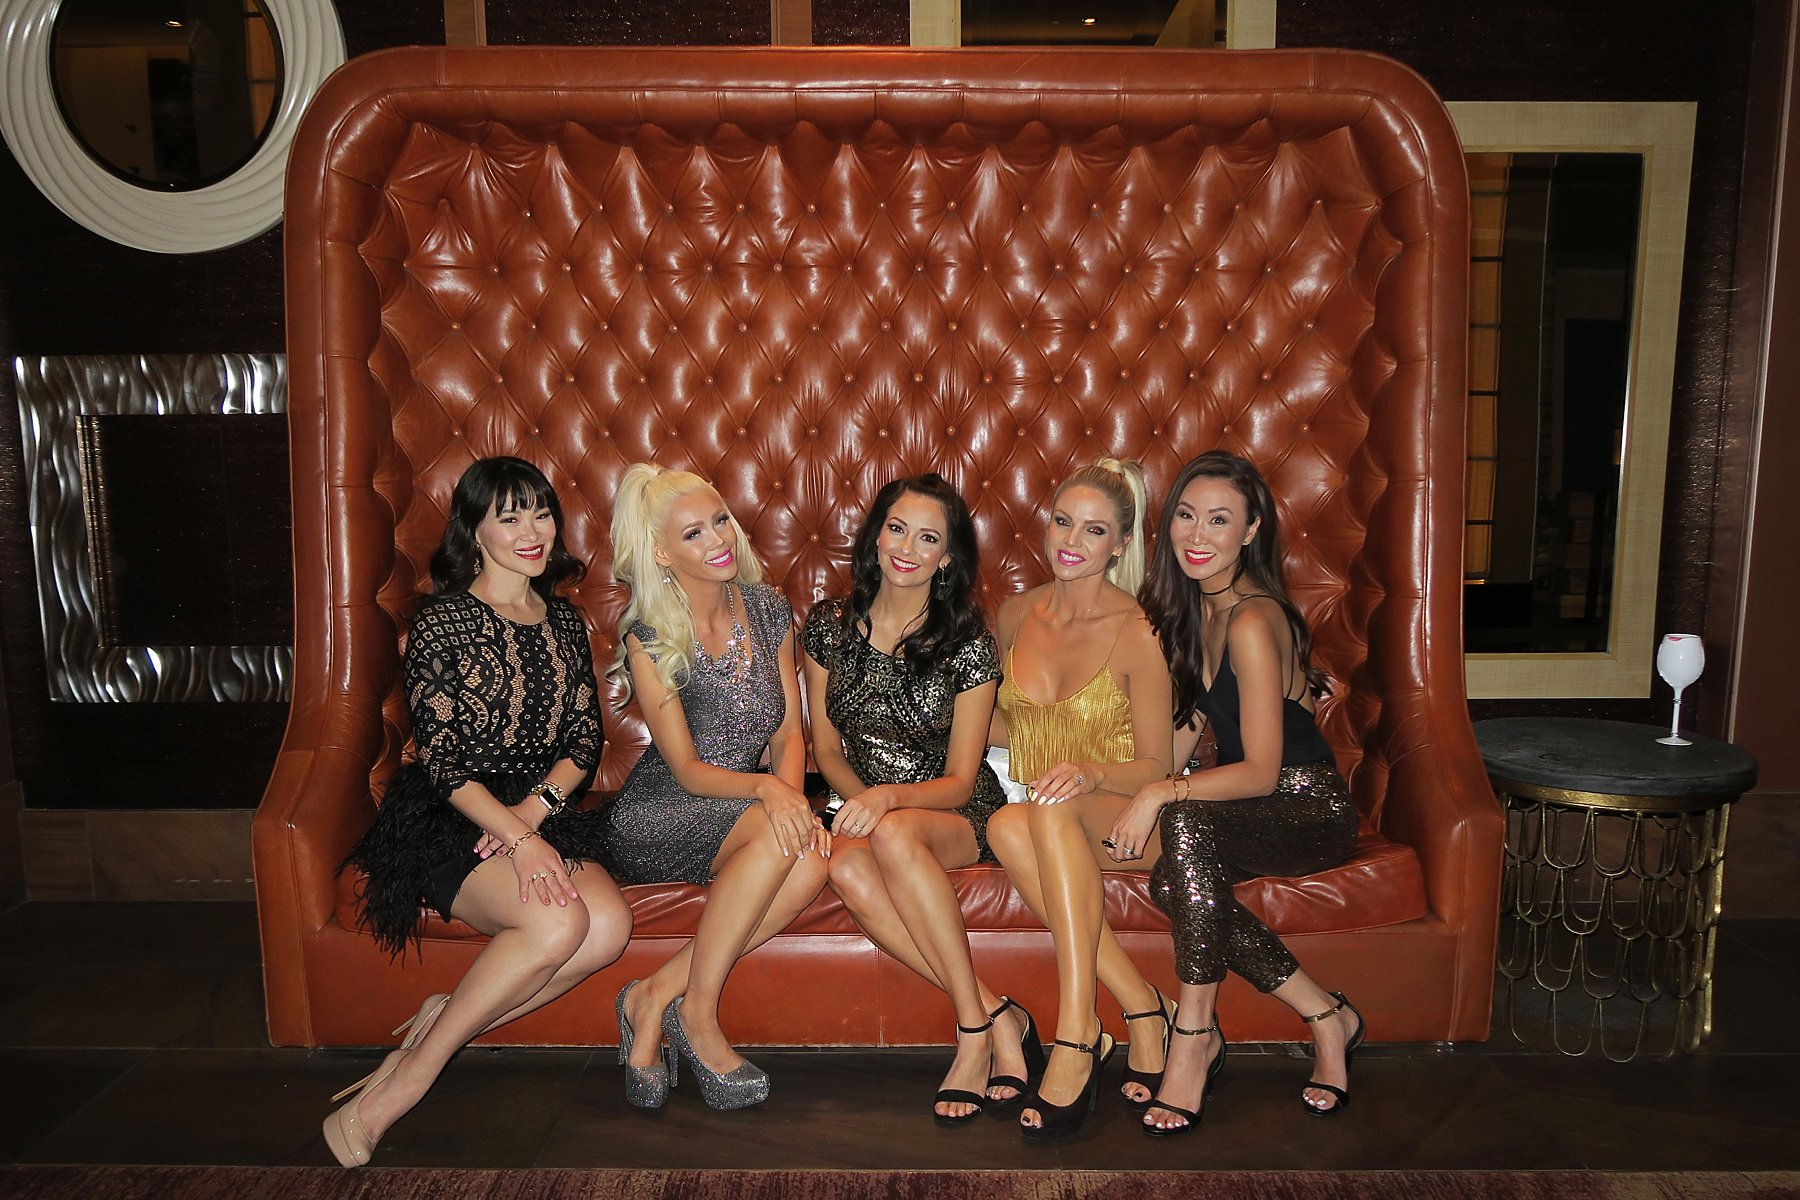 Vegas girl's trip fun things to do - Delano hotel